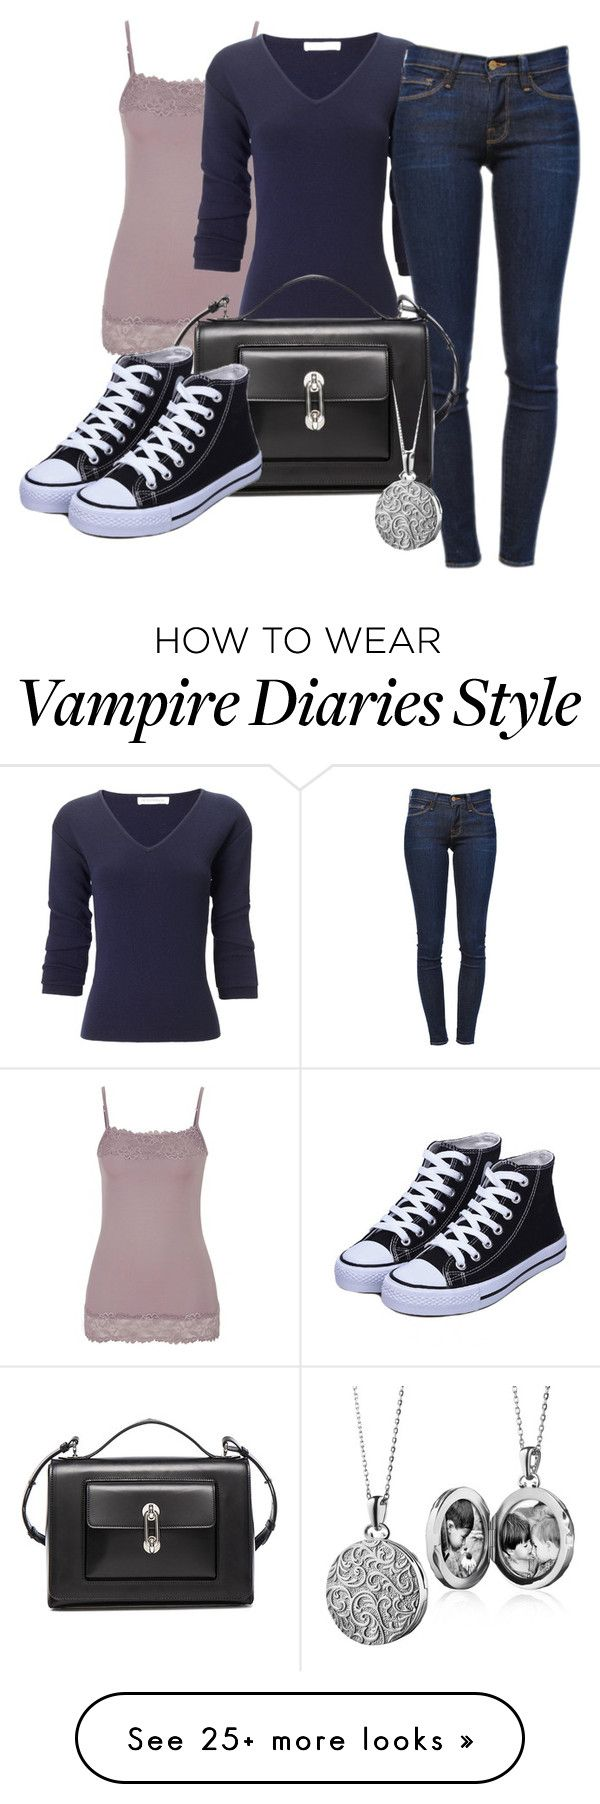 """""""Elena Gilbert (The Vampire Diaries)"""" by risacf on Polyvore featuring moda, maurices, J.W. Anderson, Frame Denim, Balenciaga y Blue Nile"""